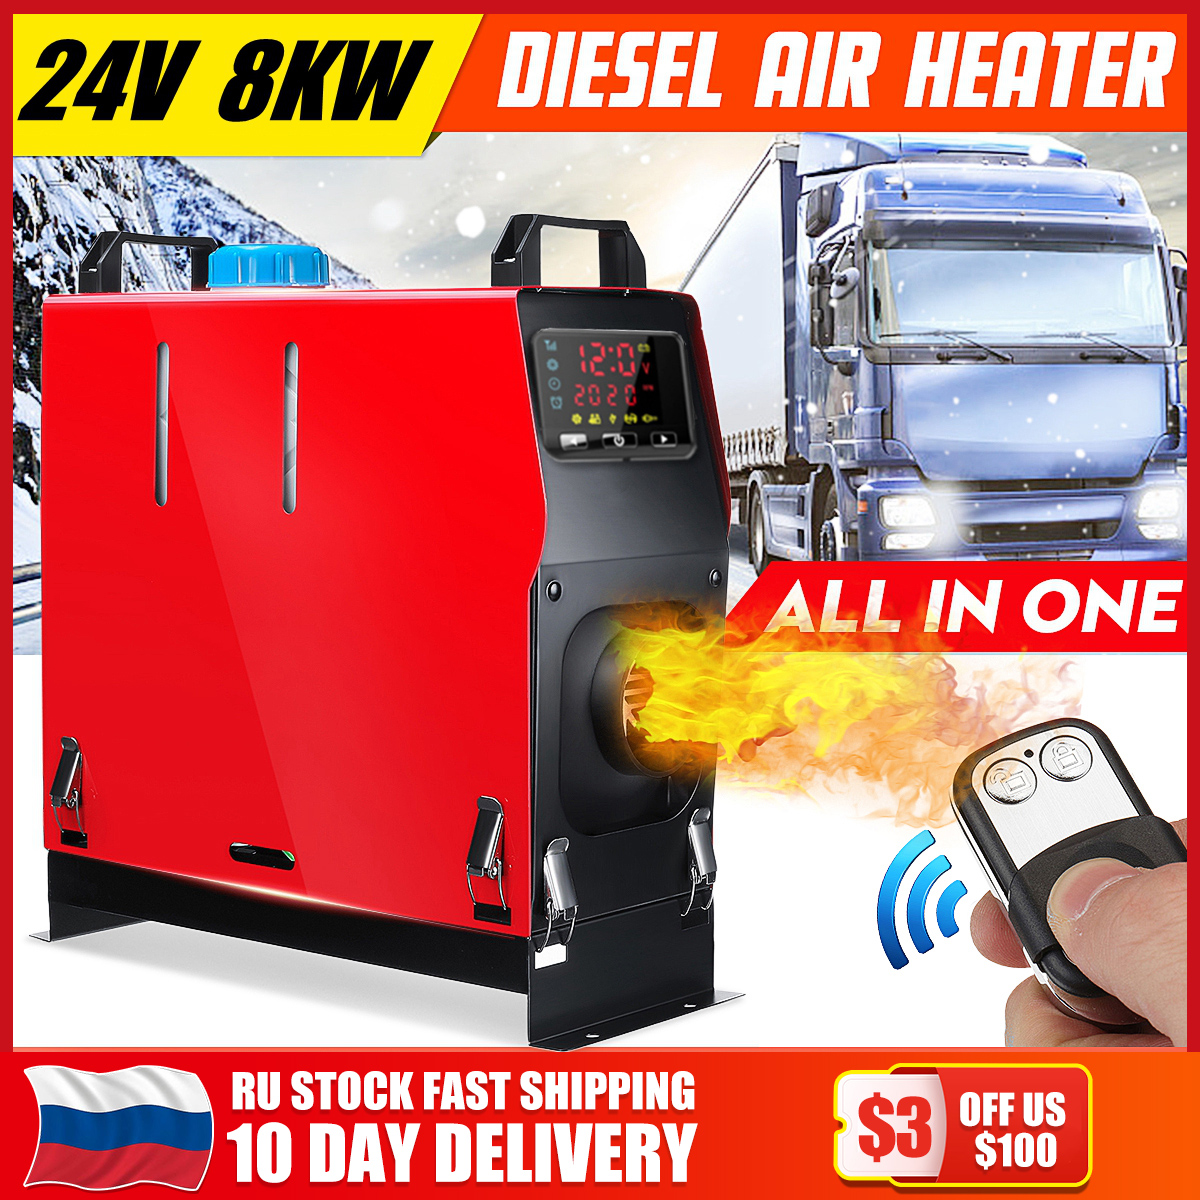 8000W 24V All In One Car Heating Tool Diesel Air Heater Single Hole LCD Monitor Parking Warmer For Car Truck Bus Boat RV Model